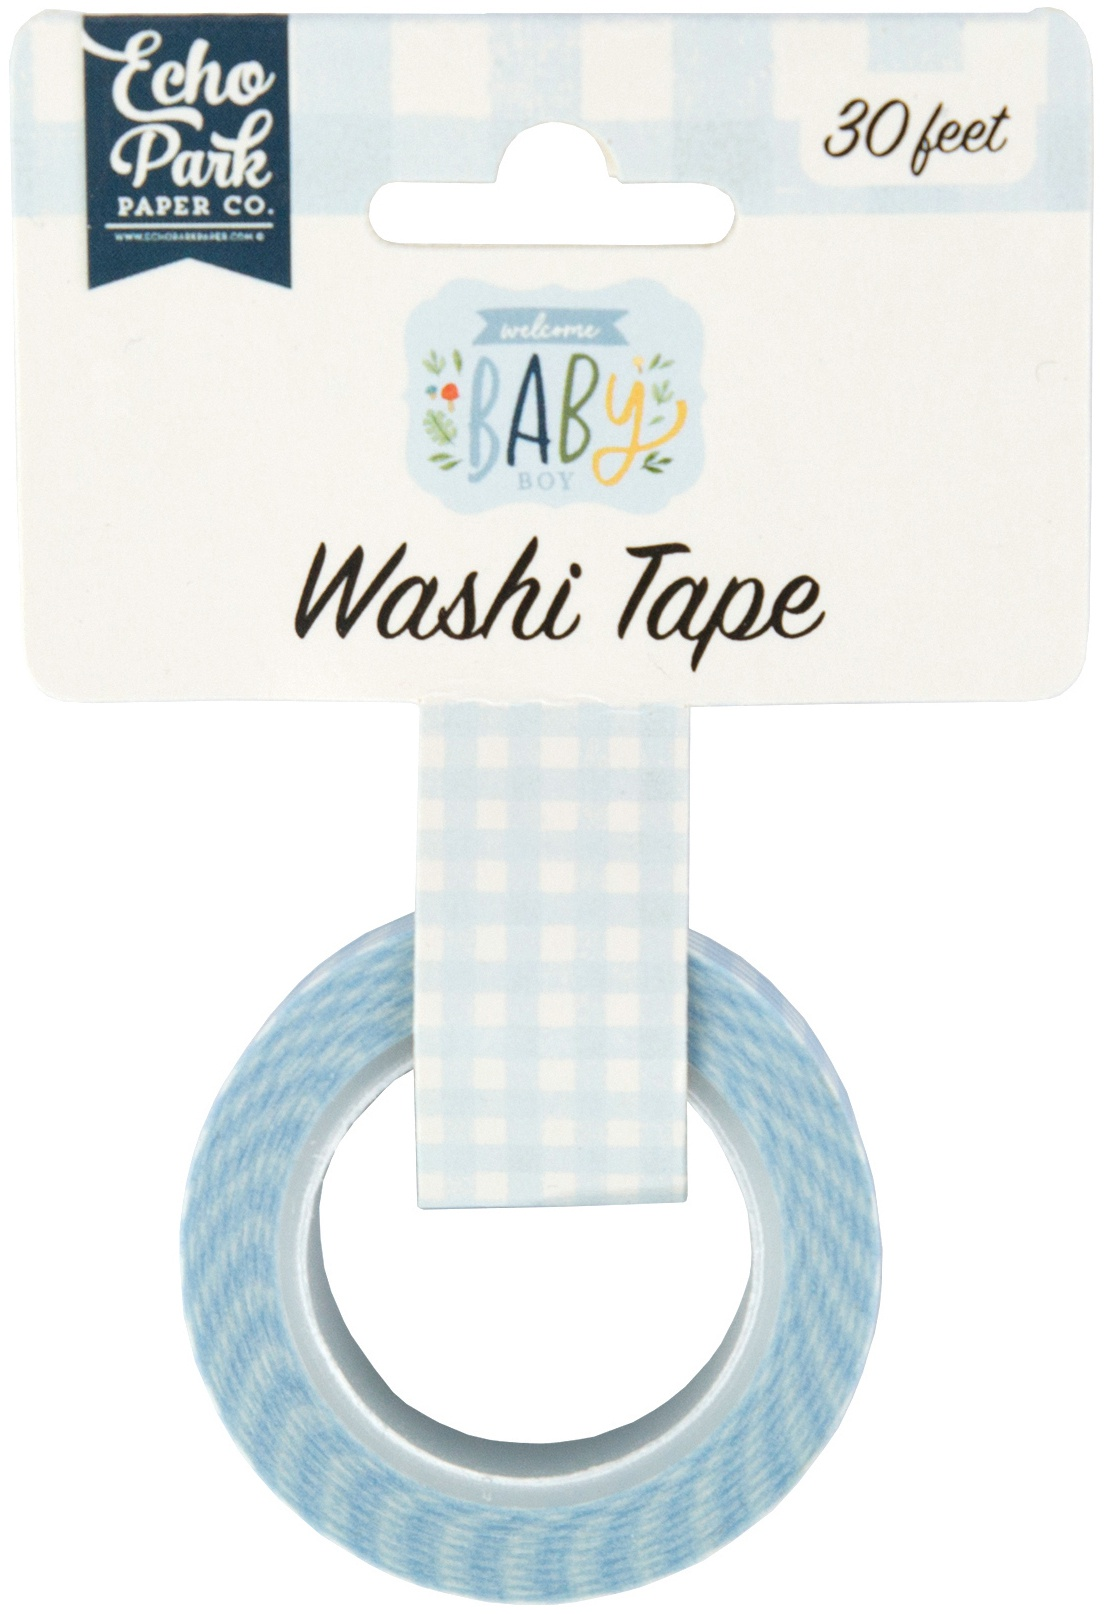 Echo Park - Welcome Baby Boy - Perfect Plaid Washi Tape